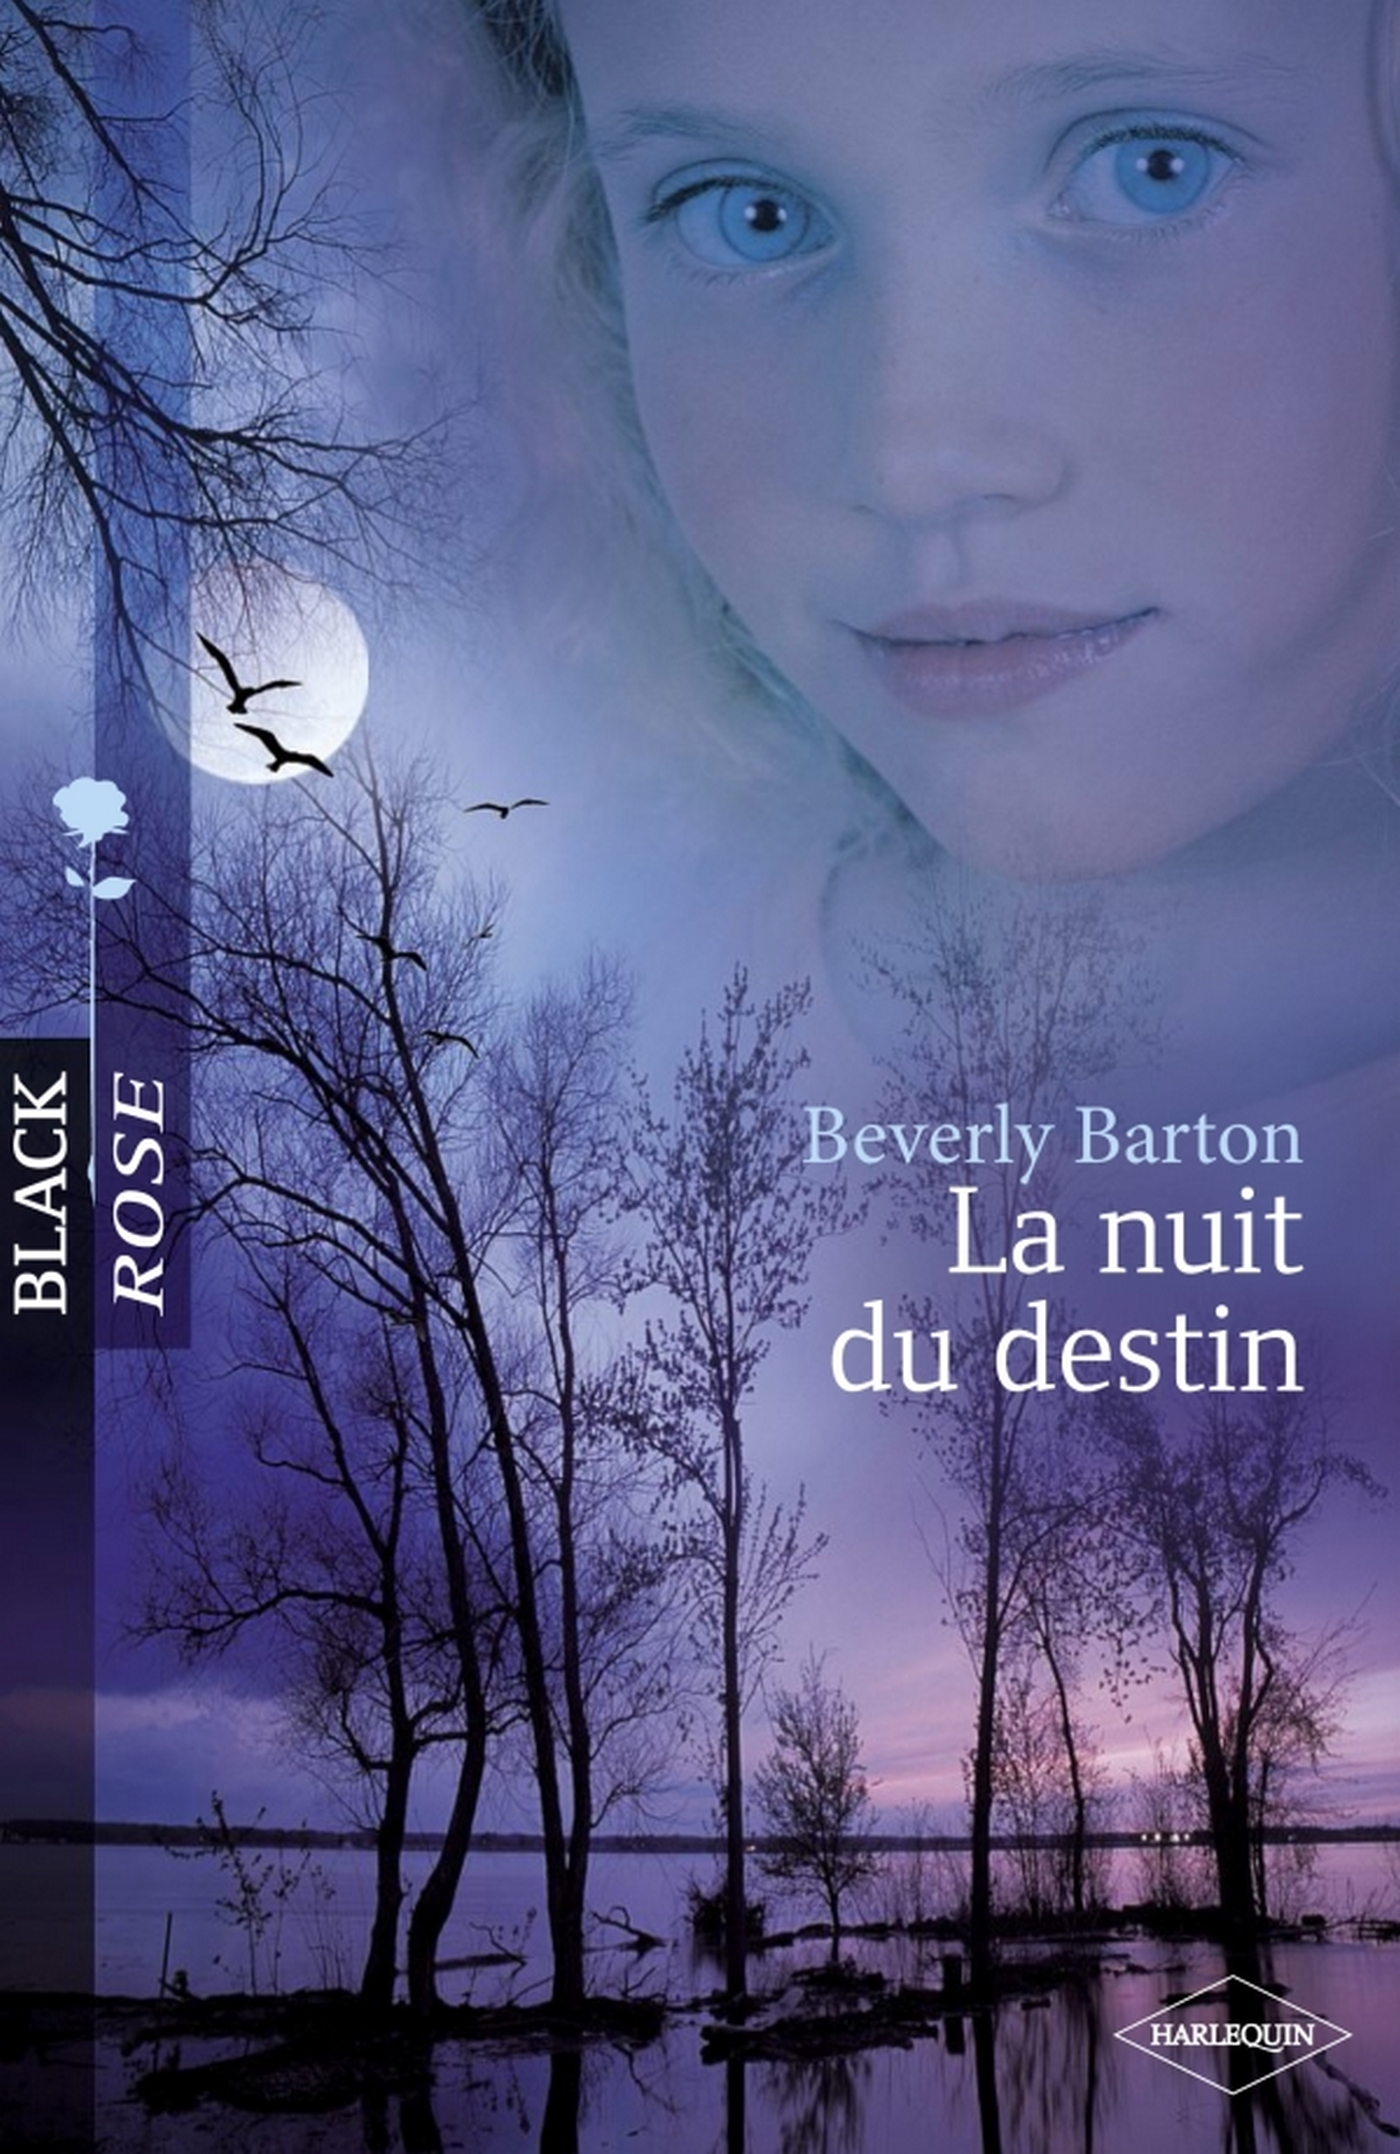 La nuit du destin (Harlequin Black Rose)